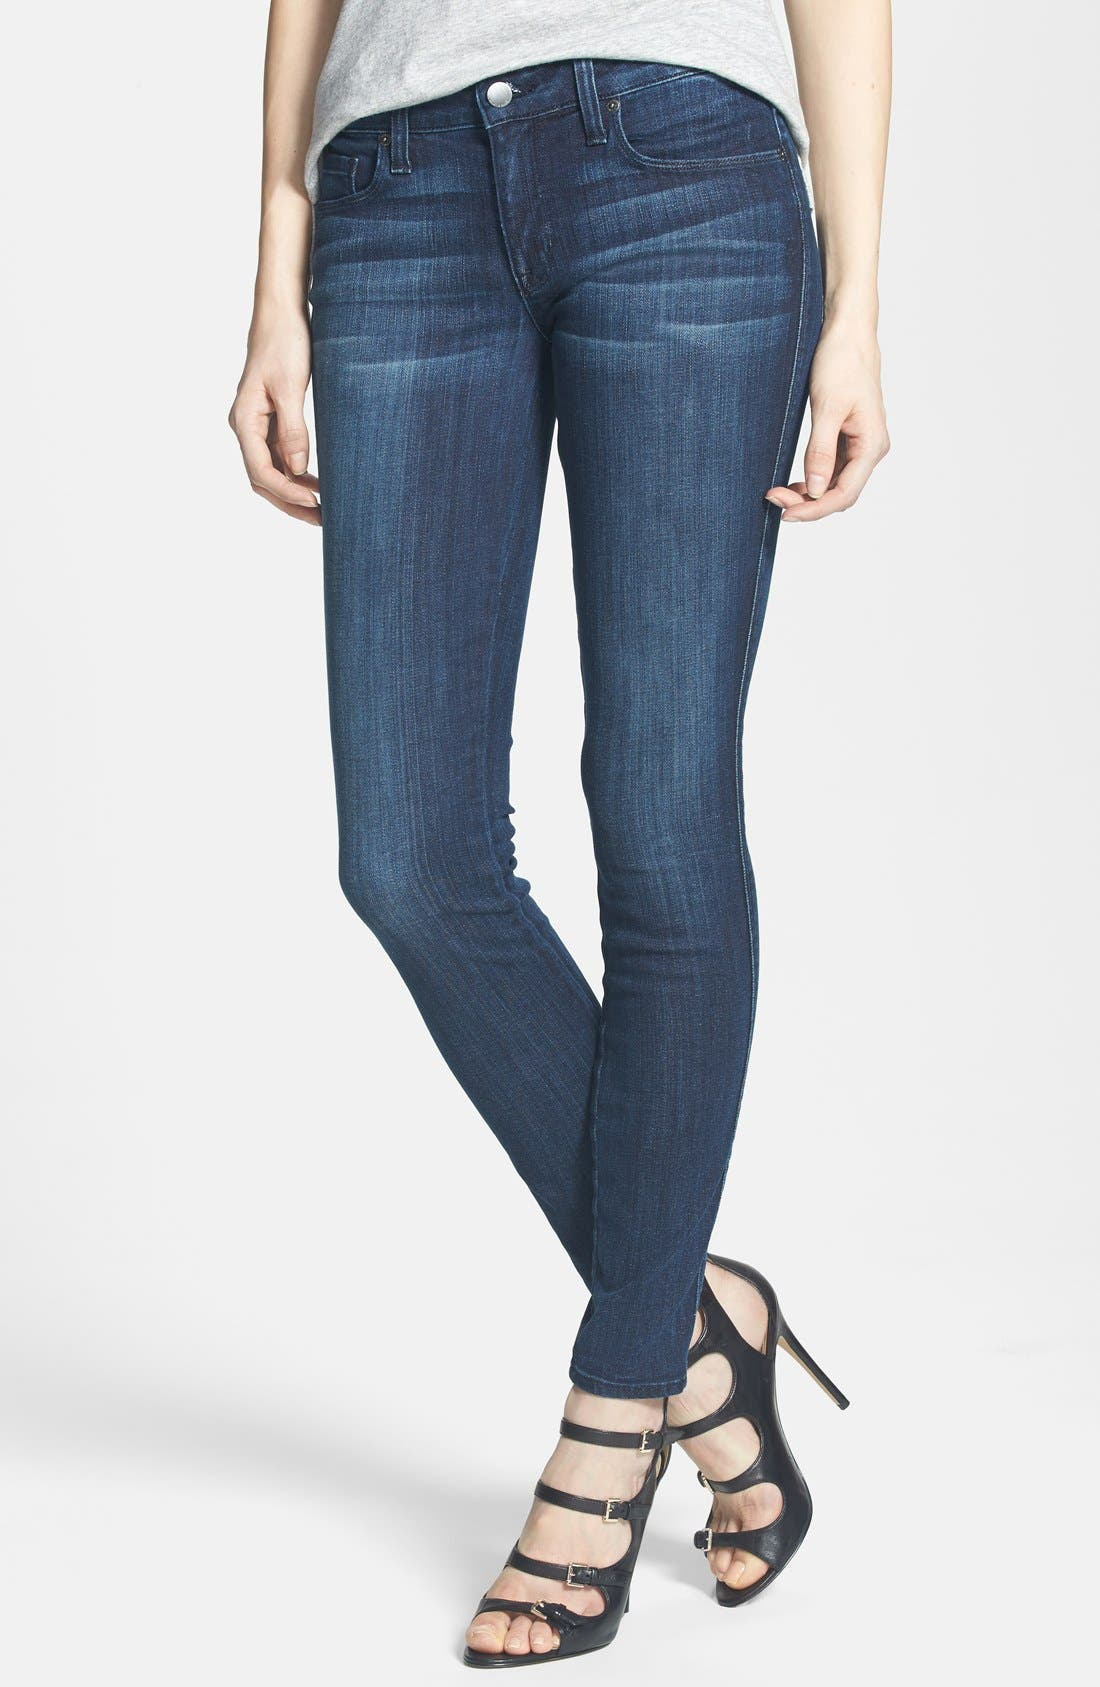 Alternate Image 1 Selected - Genetic 'Shya' Skinny Jeans (Hype)